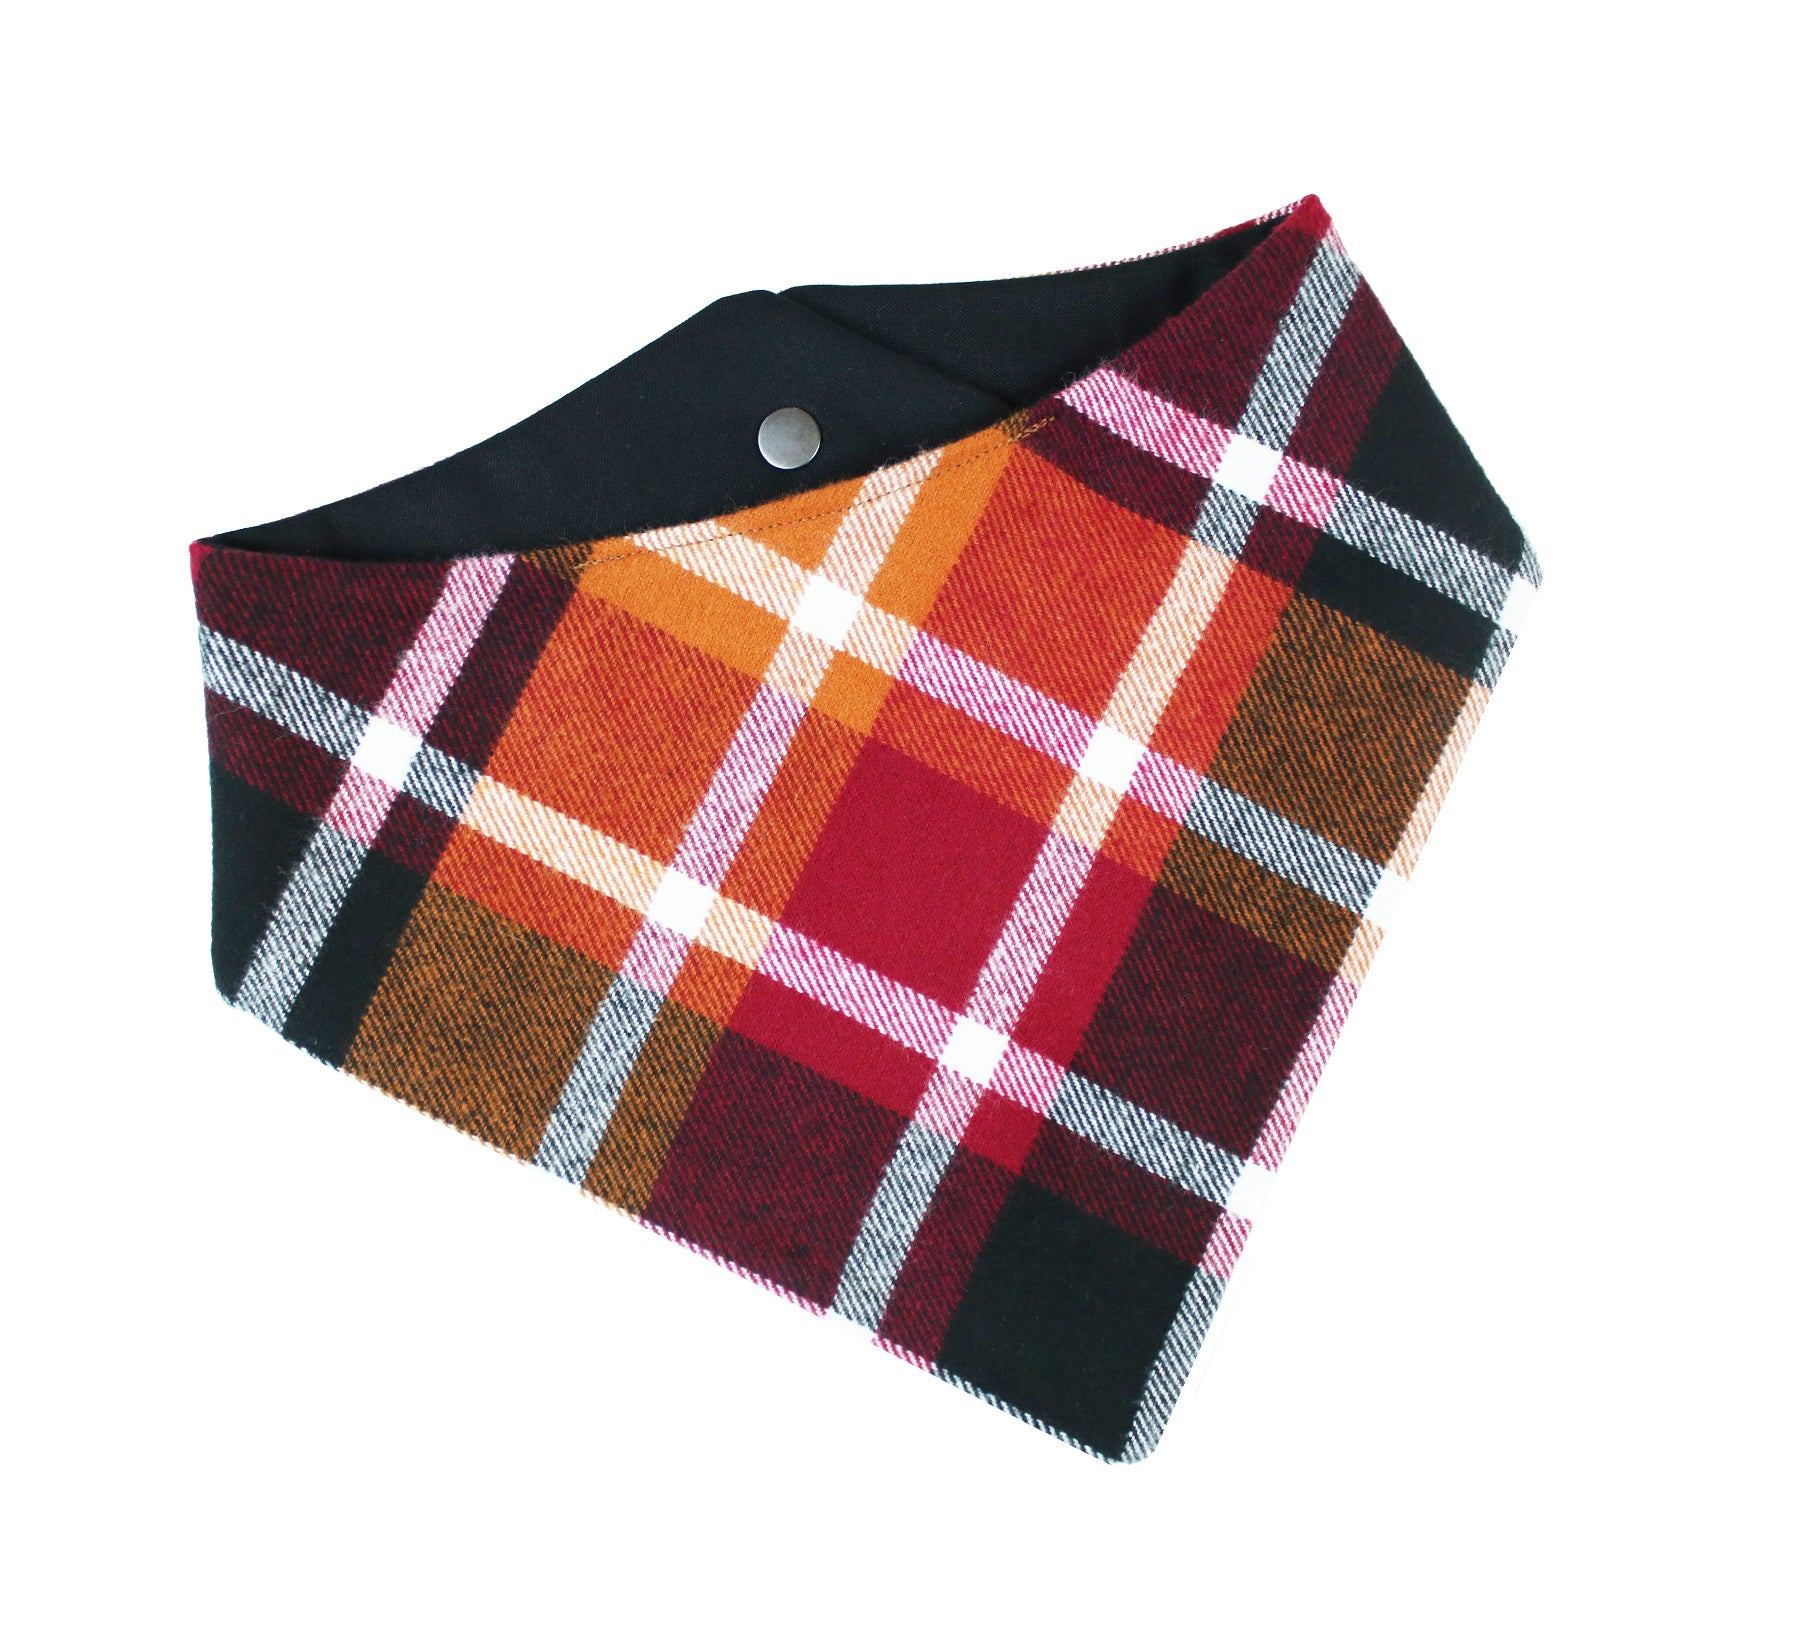 Blakeley Flannel Bandana